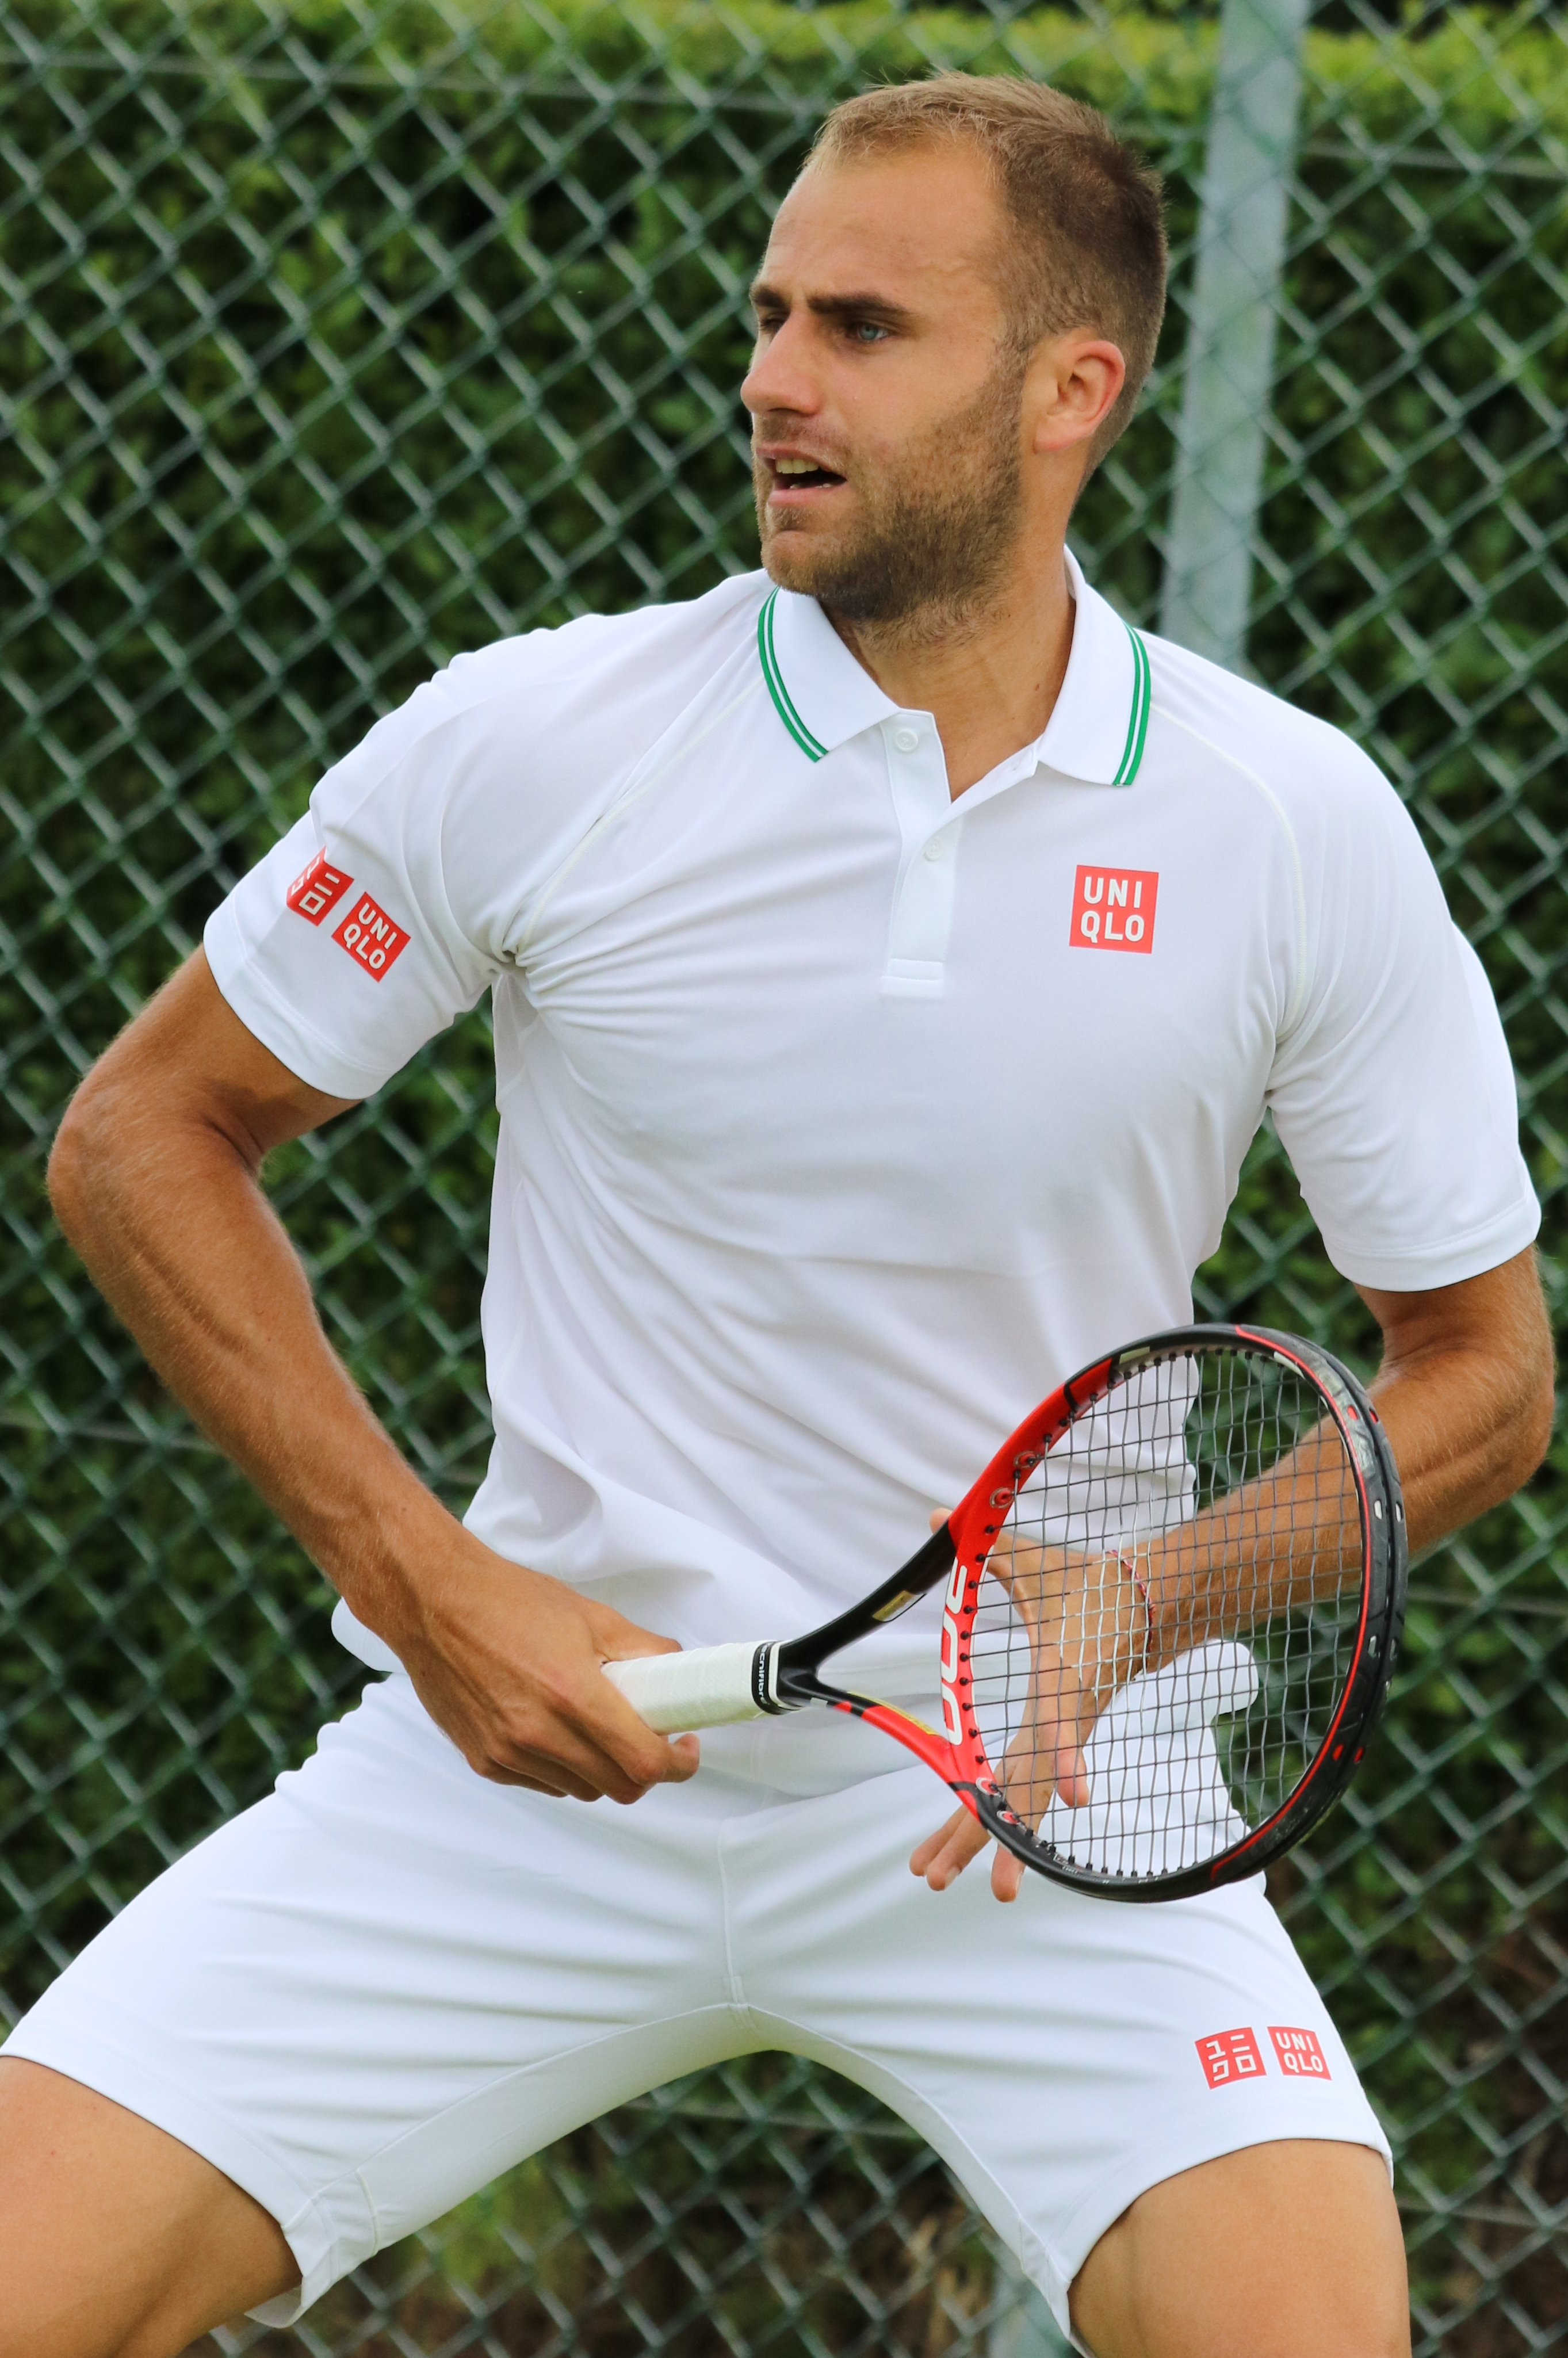 The 27-year old son of father (?) and mother(?) Marius Copil in 2018 photo. Marius Copil earned a  million dollar salary - leaving the net worth at 5 million in 2018